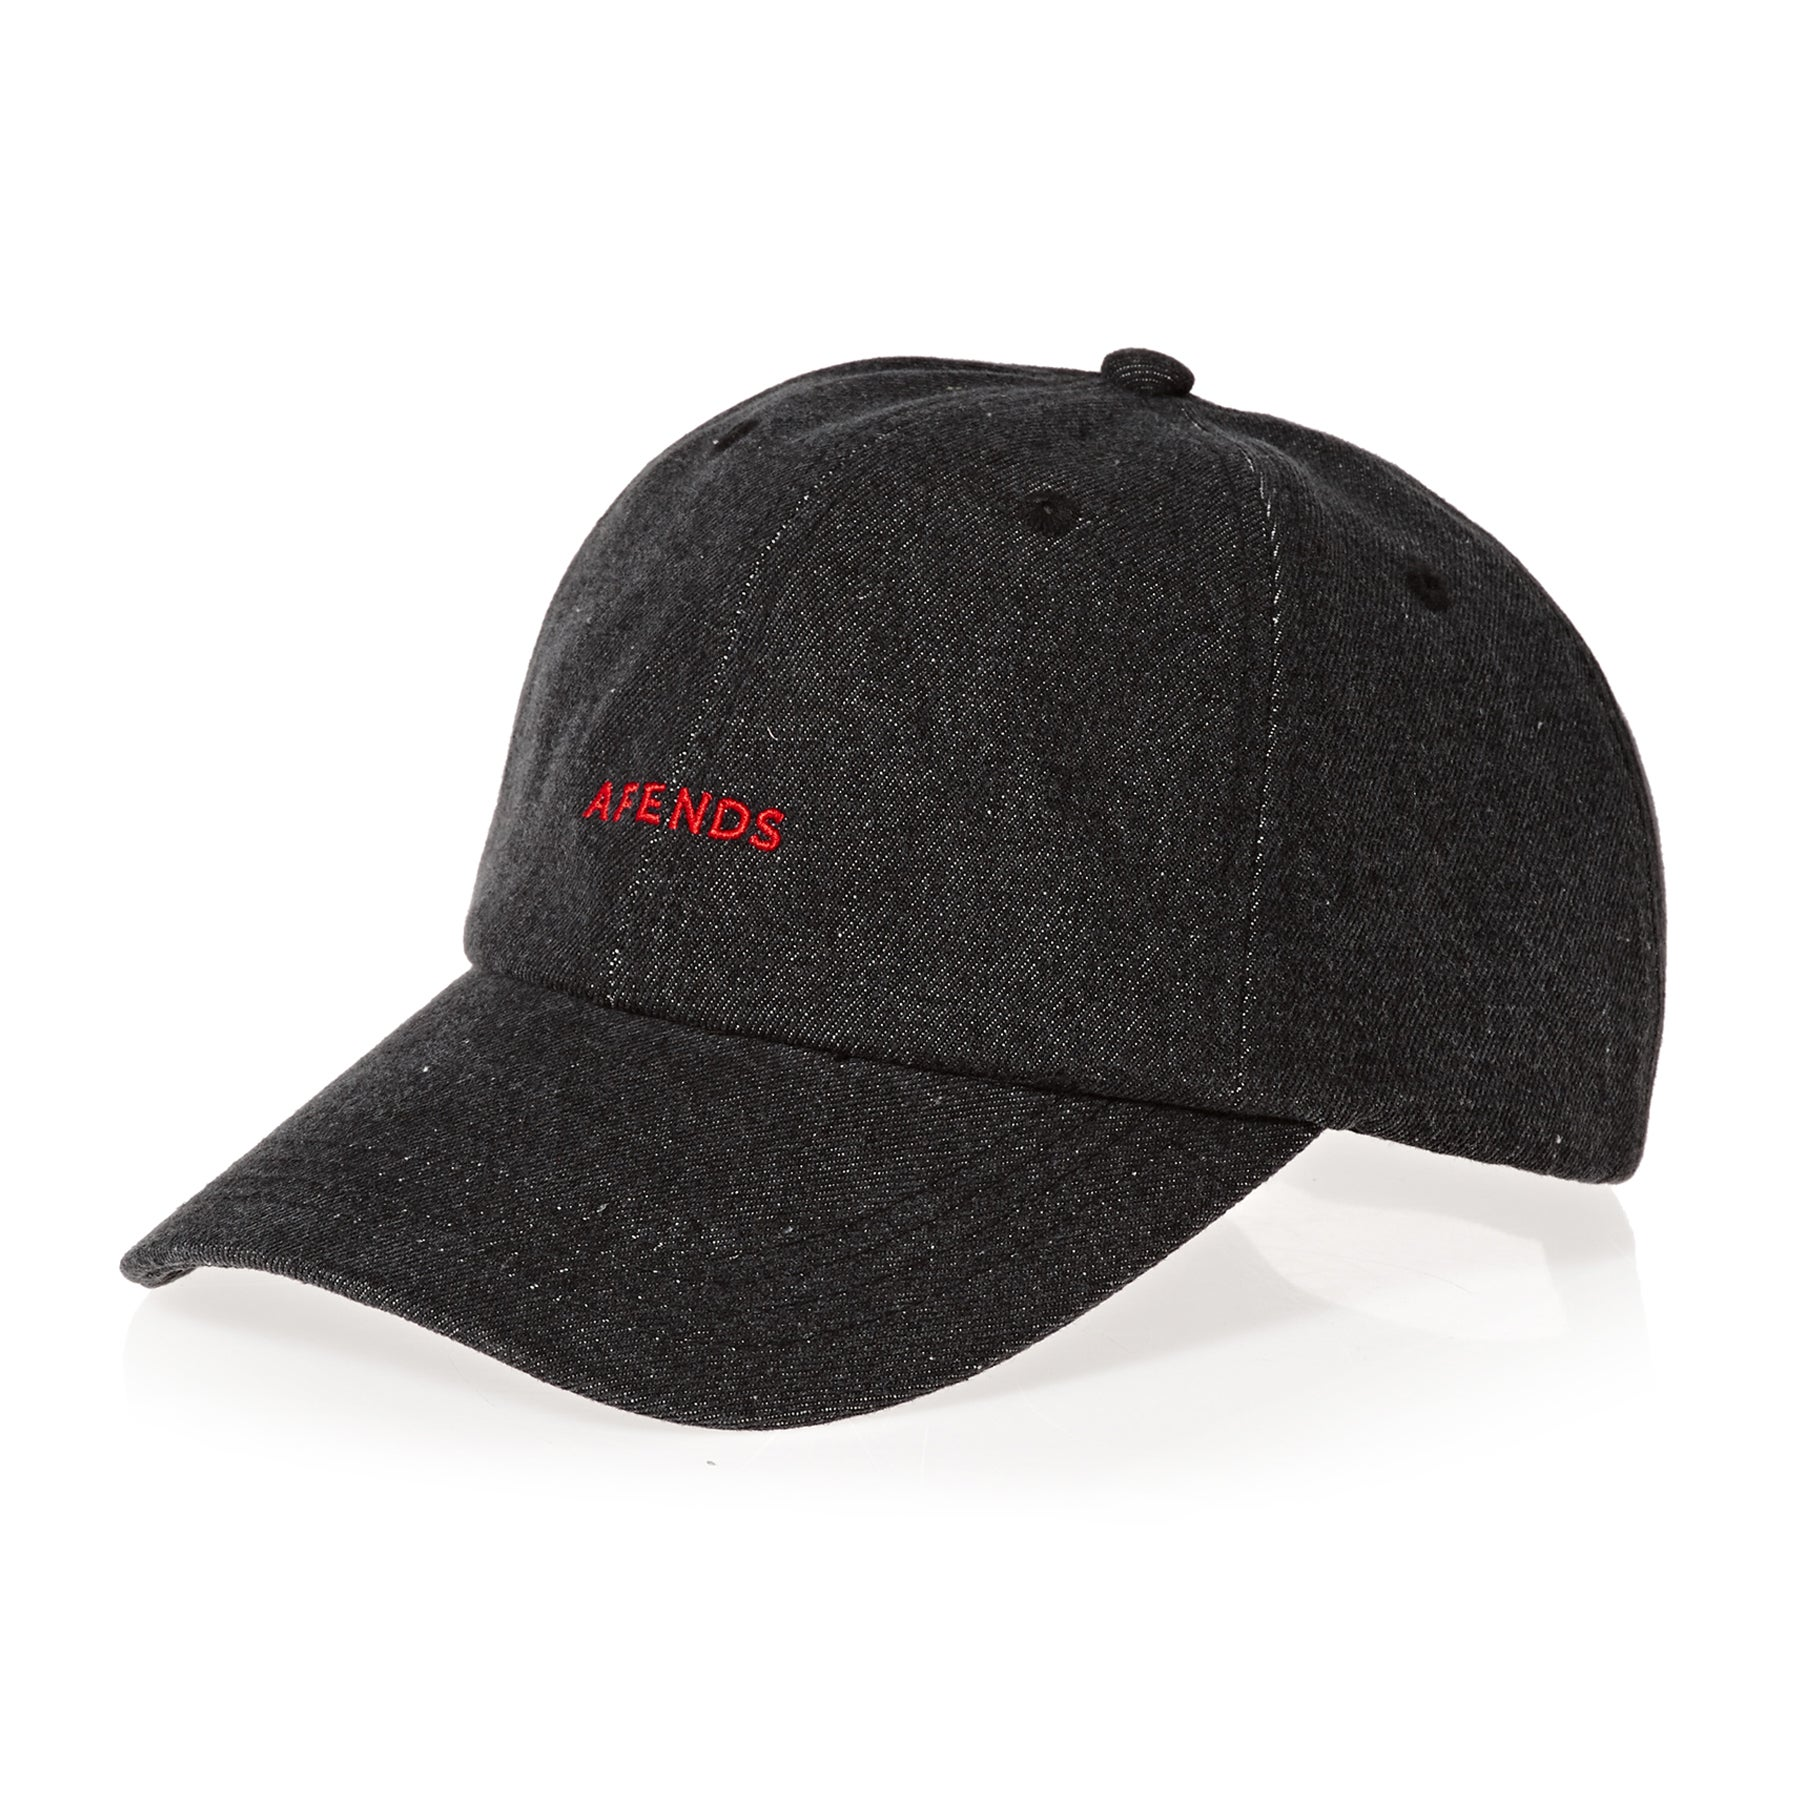 Gorro Afends Refuse - Faded Black